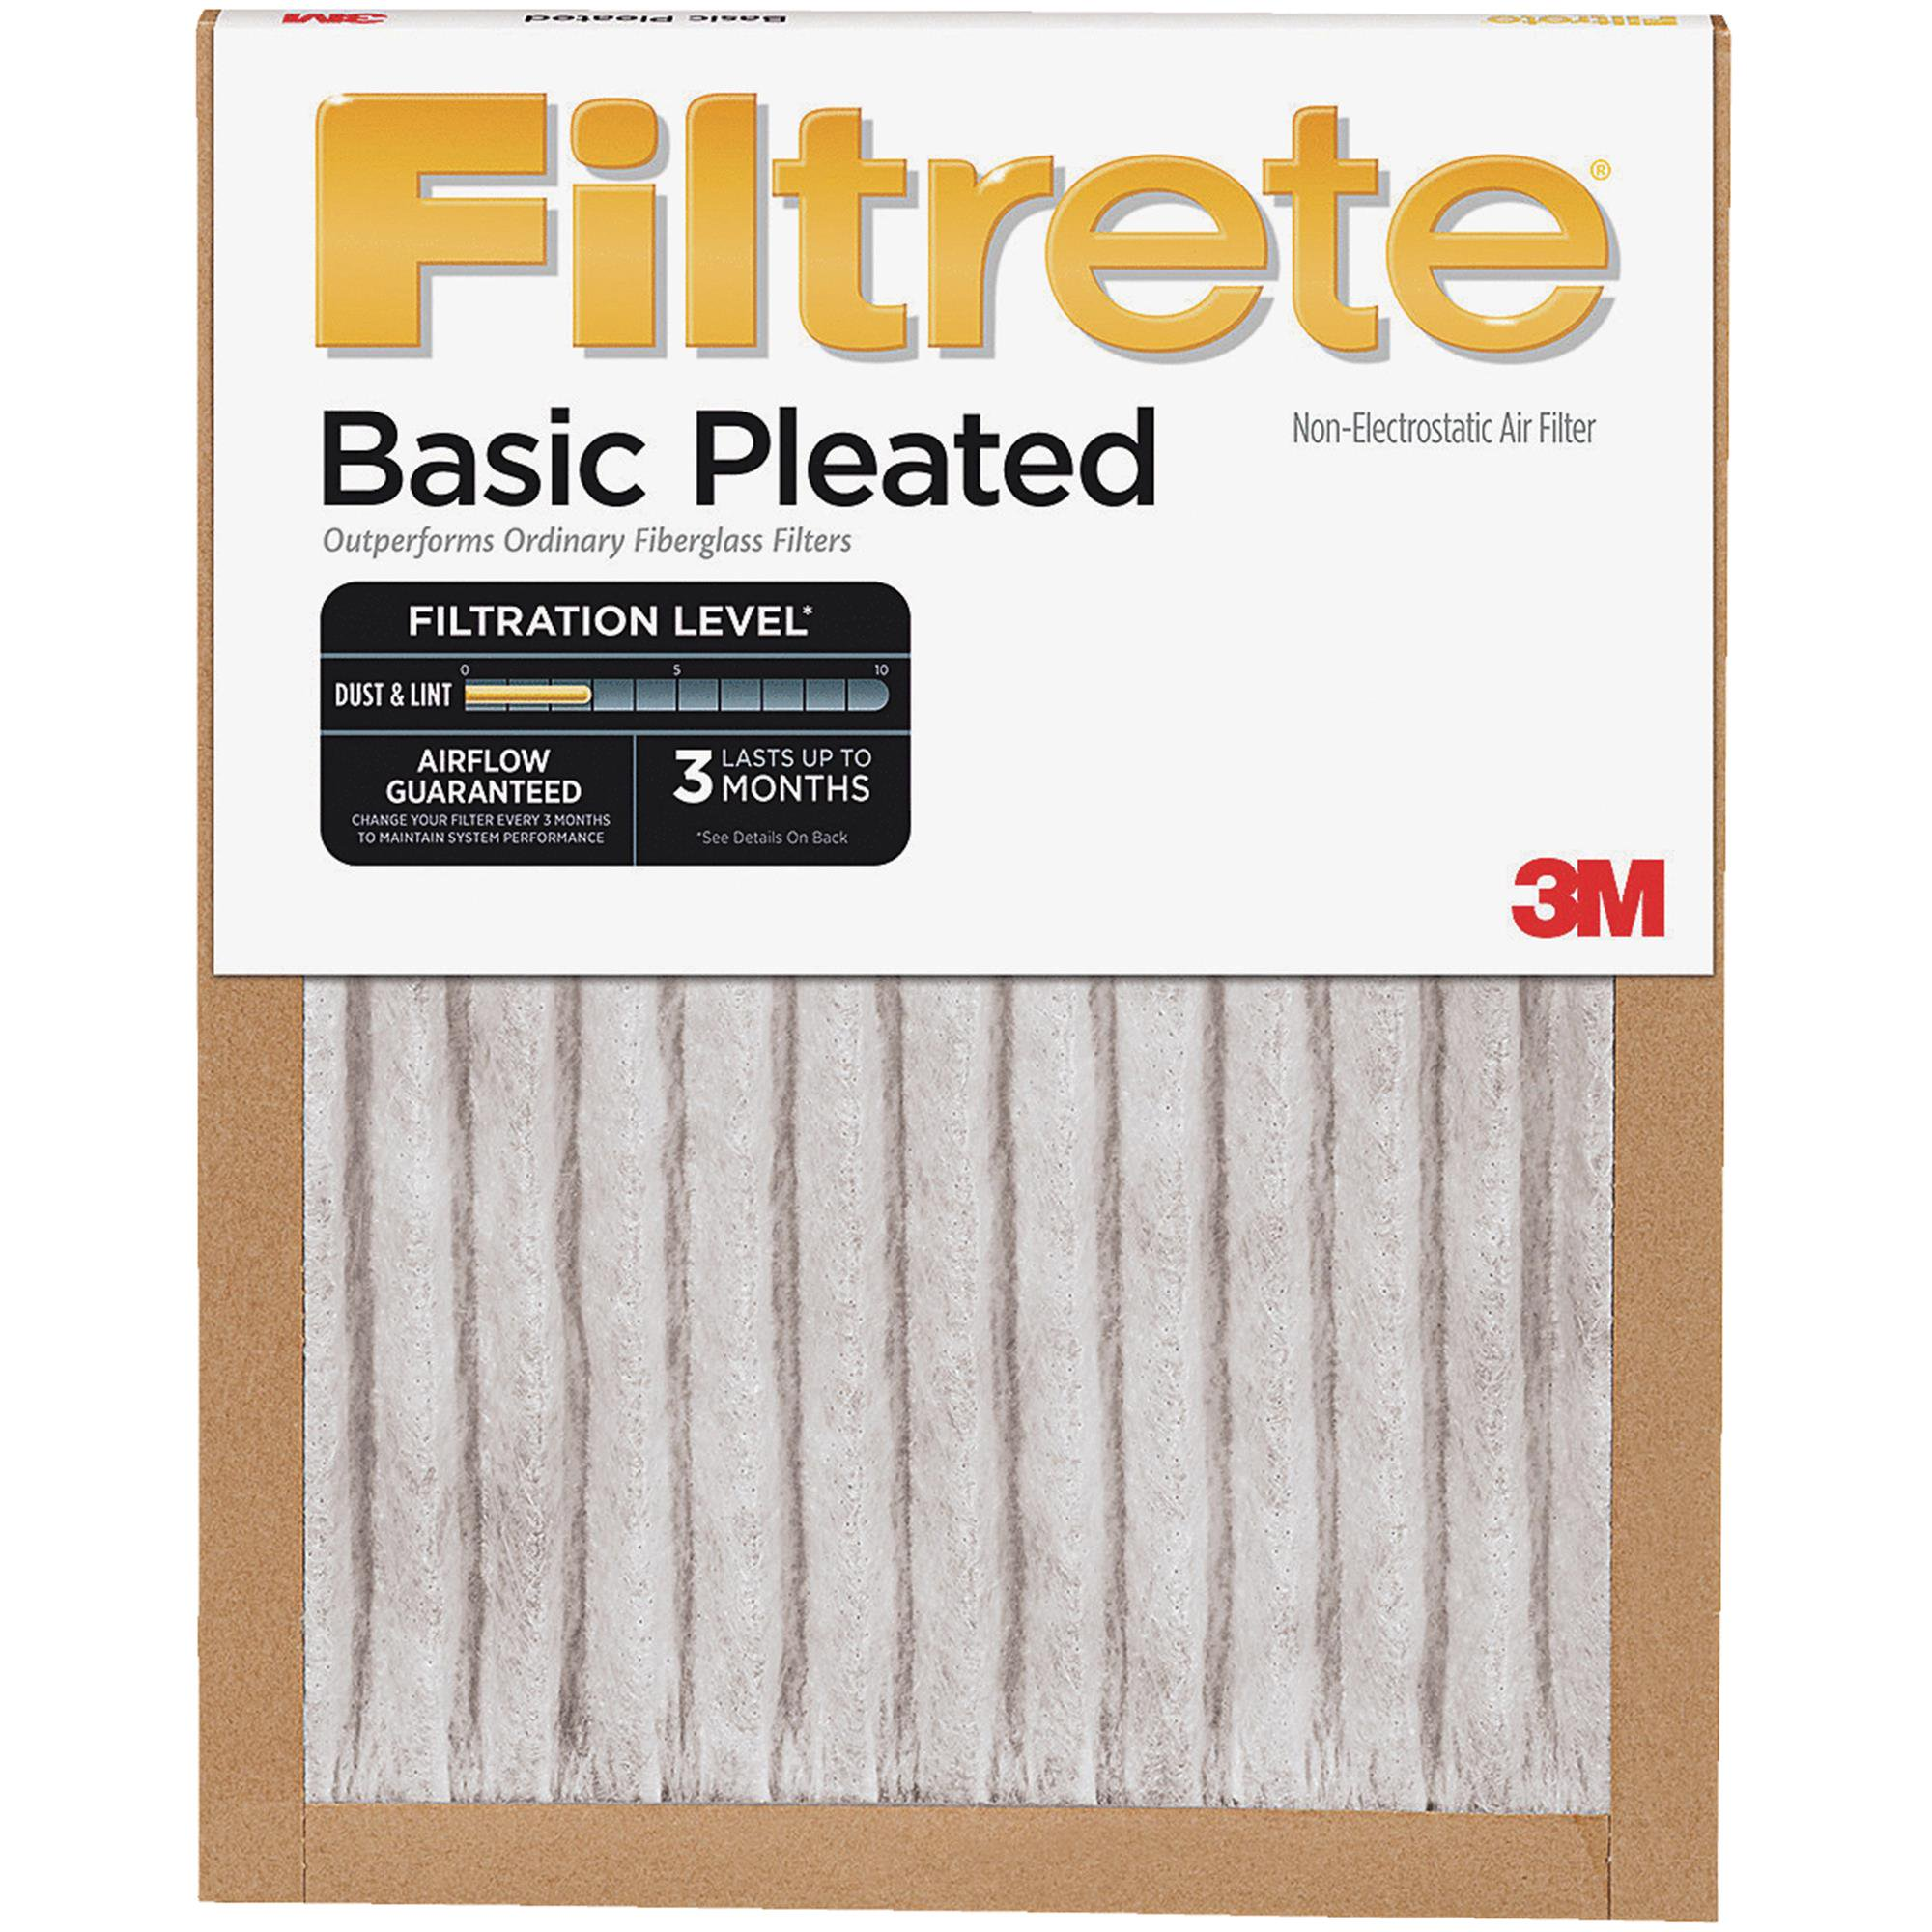 3M Filtrete Basic Pleated Furnace Filter